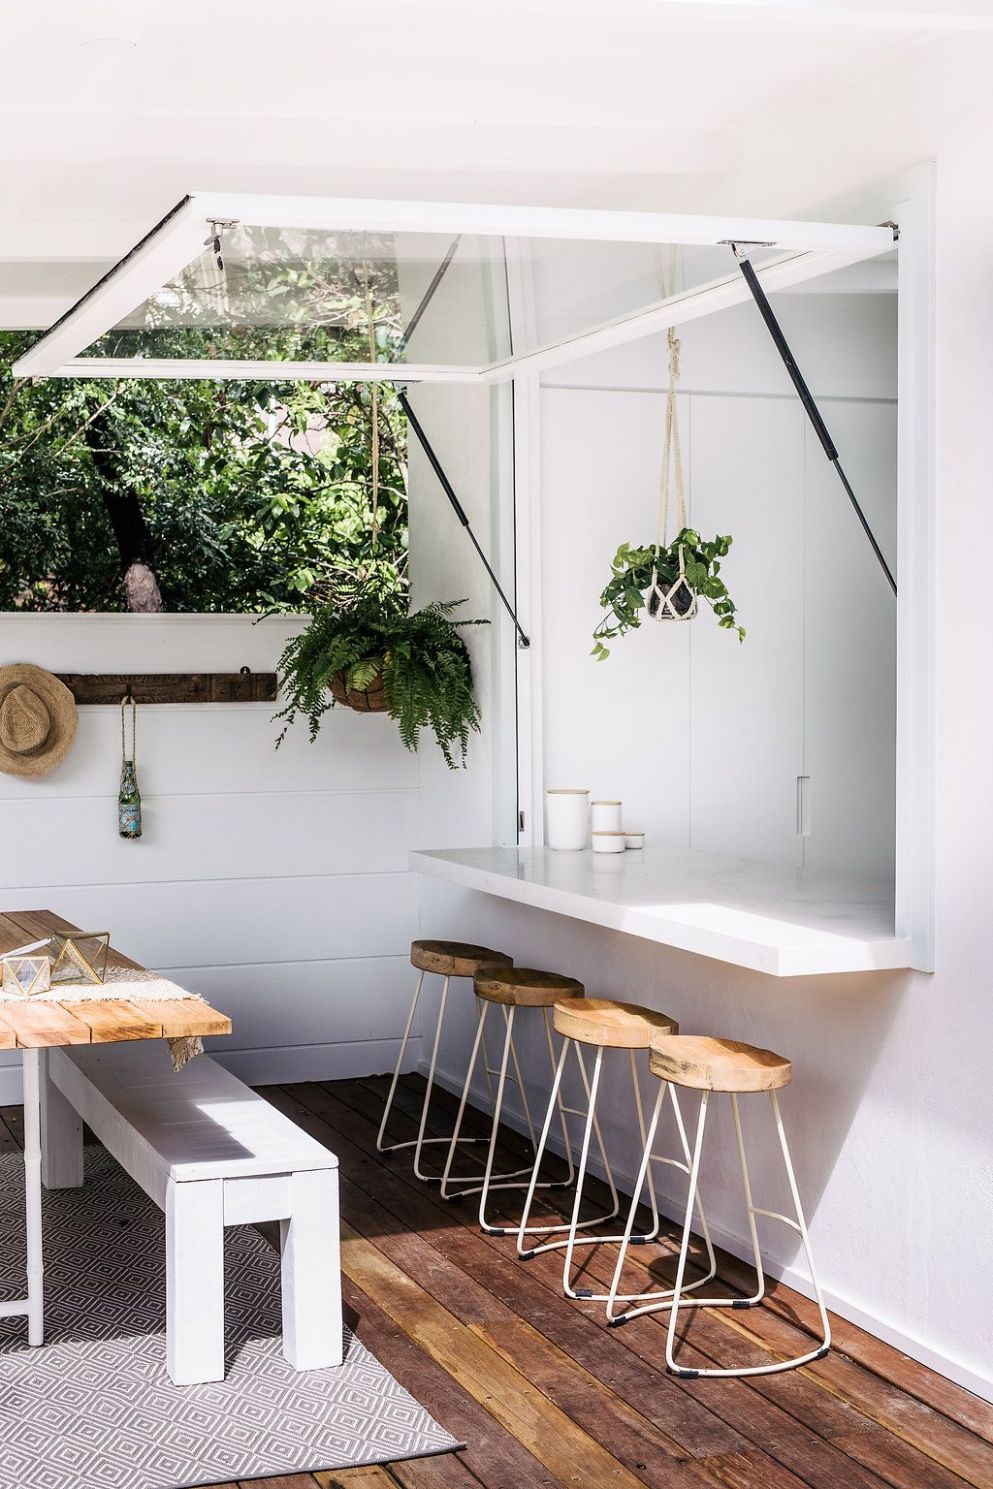 Lana's Forever Home - House Six | Indoor outdoor kitchen, Outdoor ...